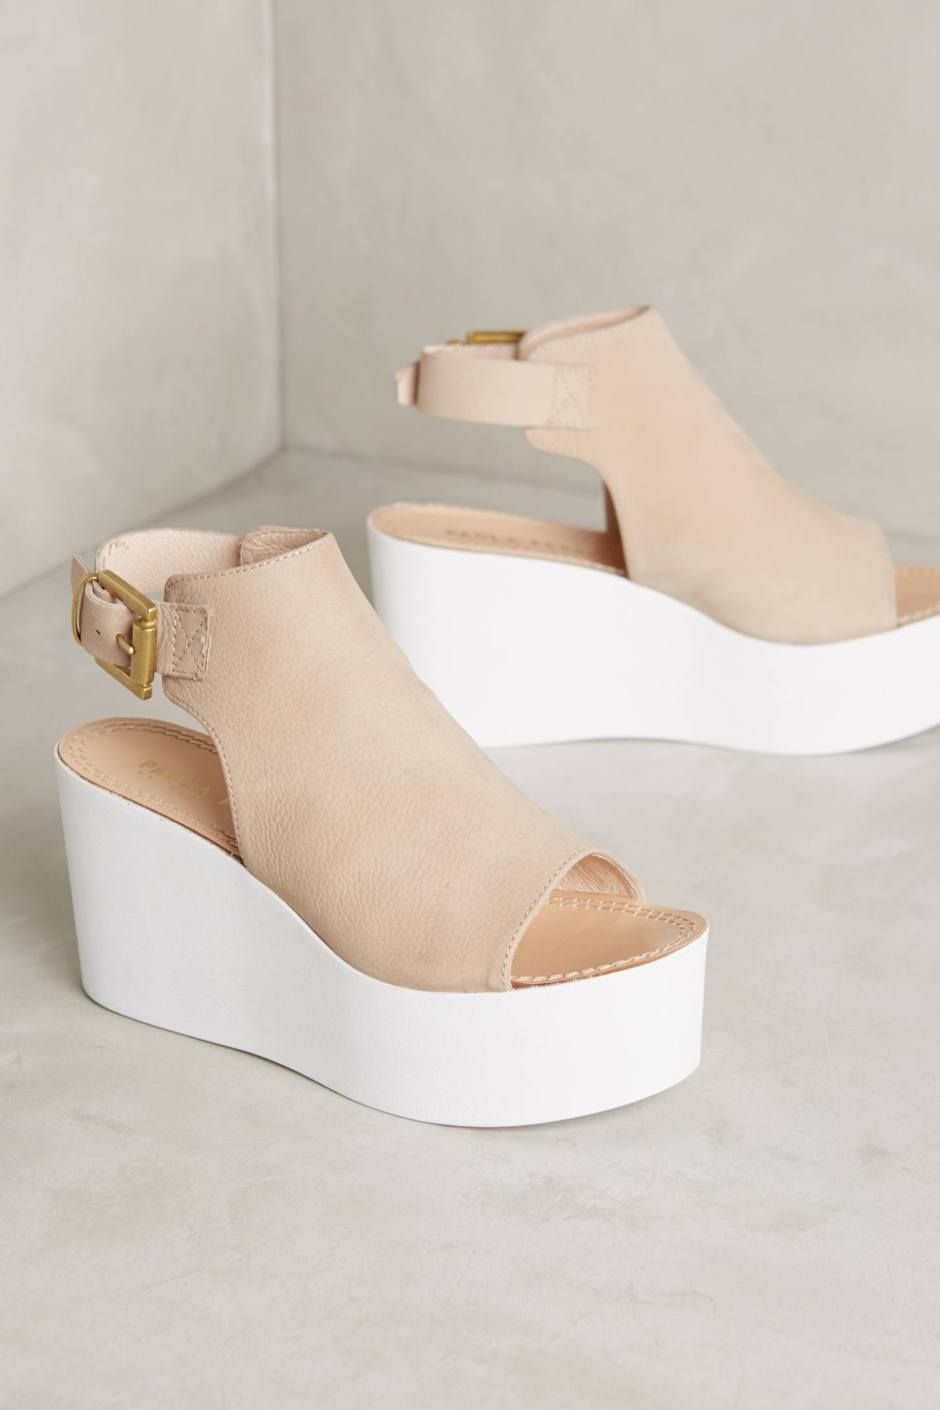 Anthropologie s New Arrivals  Sandal Season  d186acd2dca